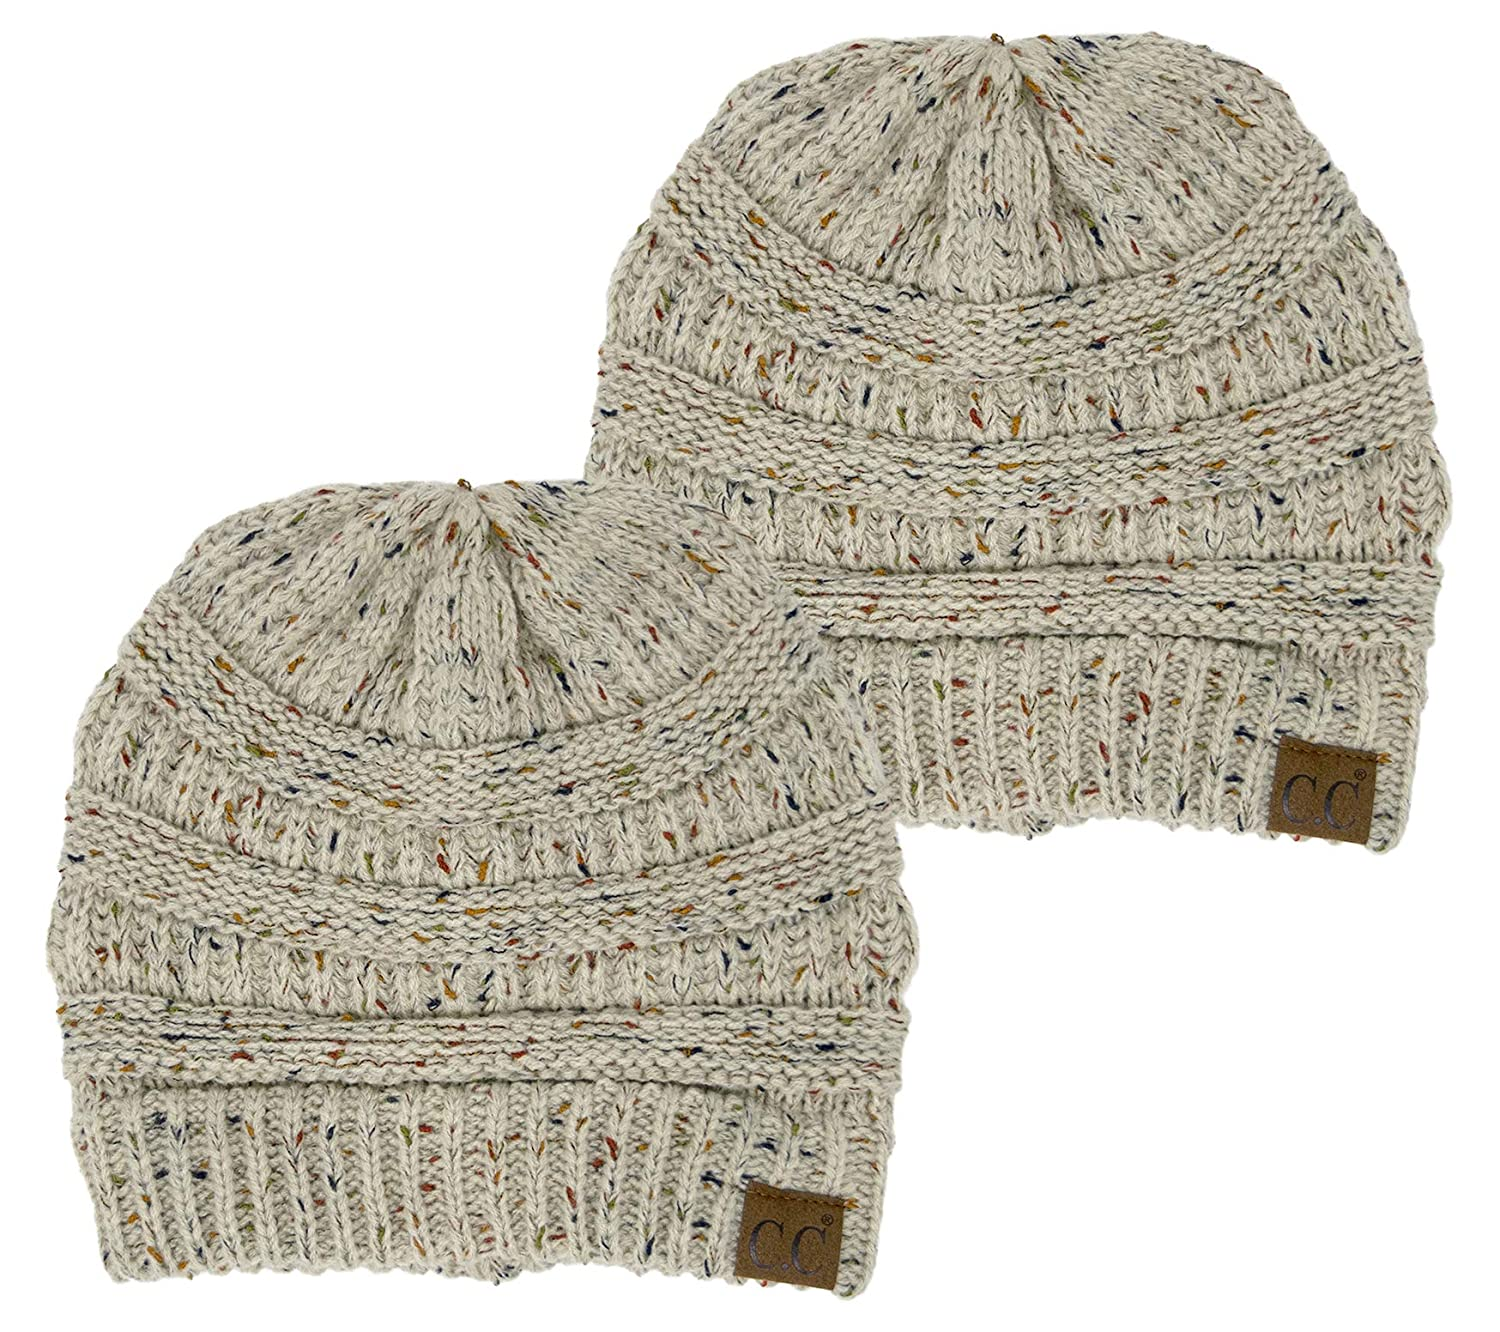 Details about Funky Junque CC Confetti Knit Beanie - Thick Soft Warm Winter  Hat - Unisex 7bfb2ca0b7bf